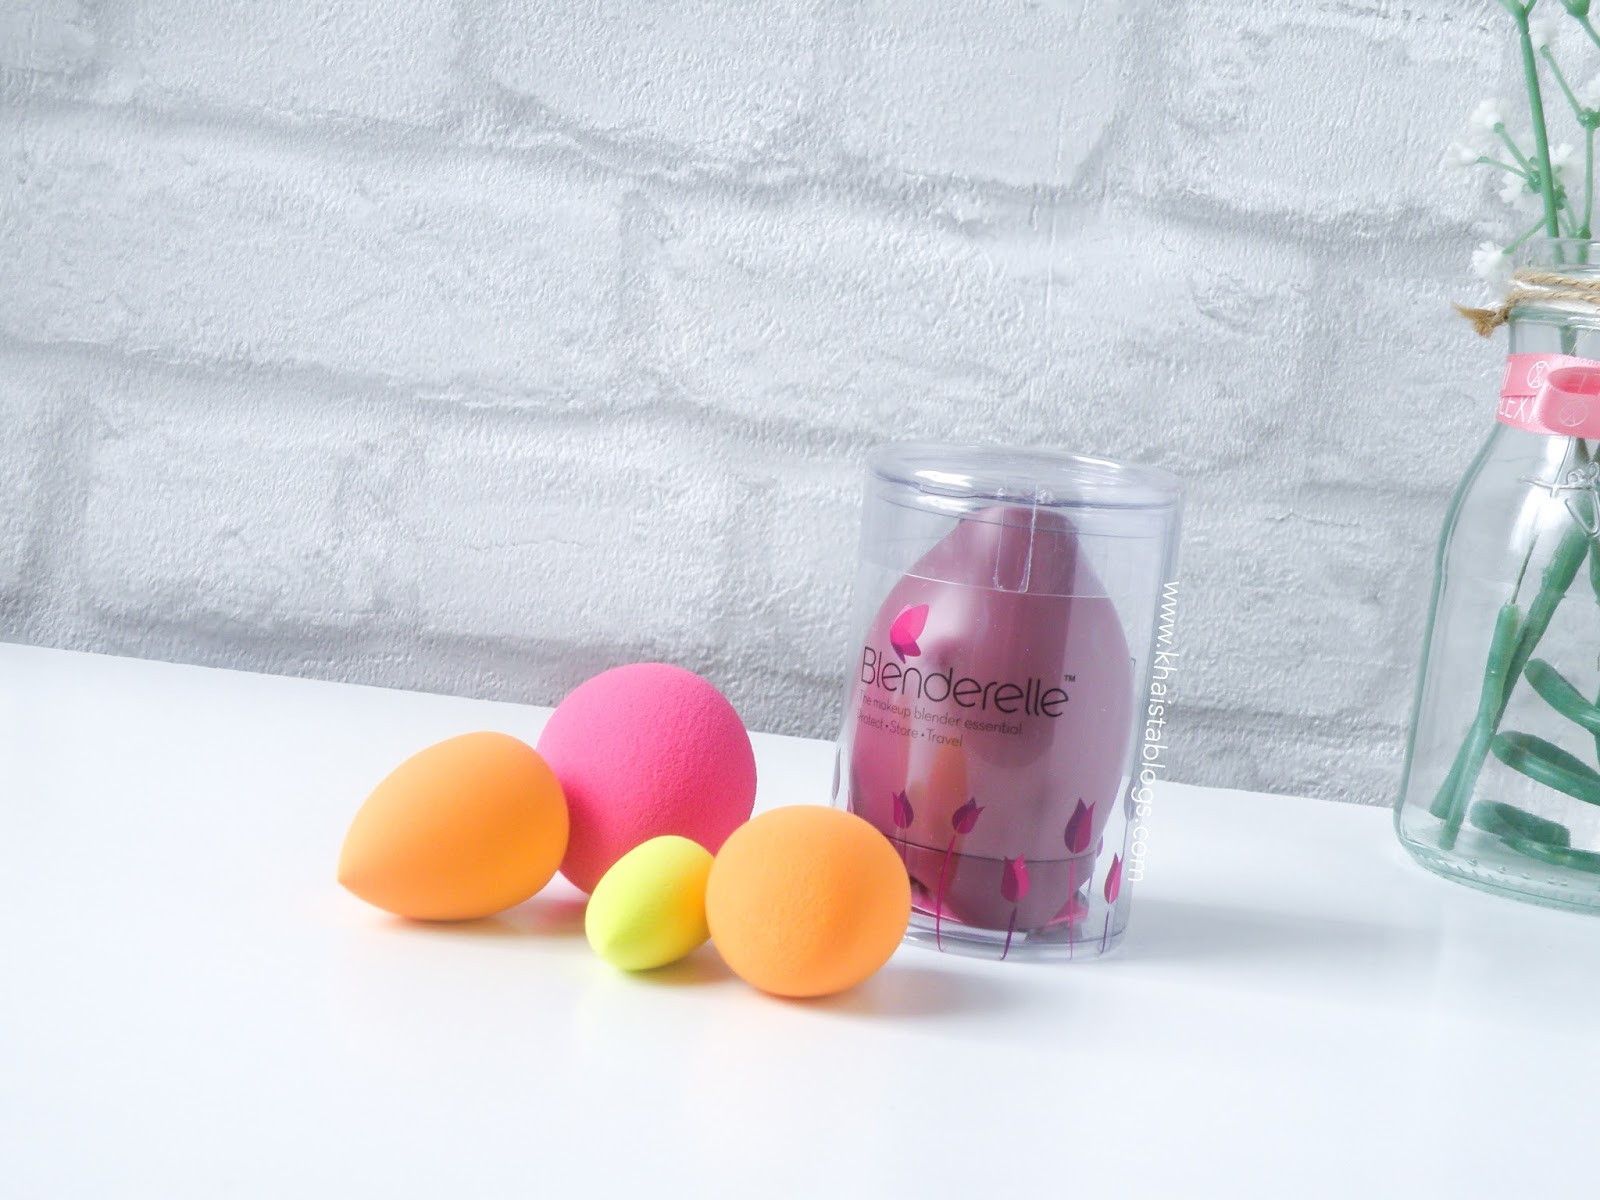 blenderelle-beauty-blender-storage